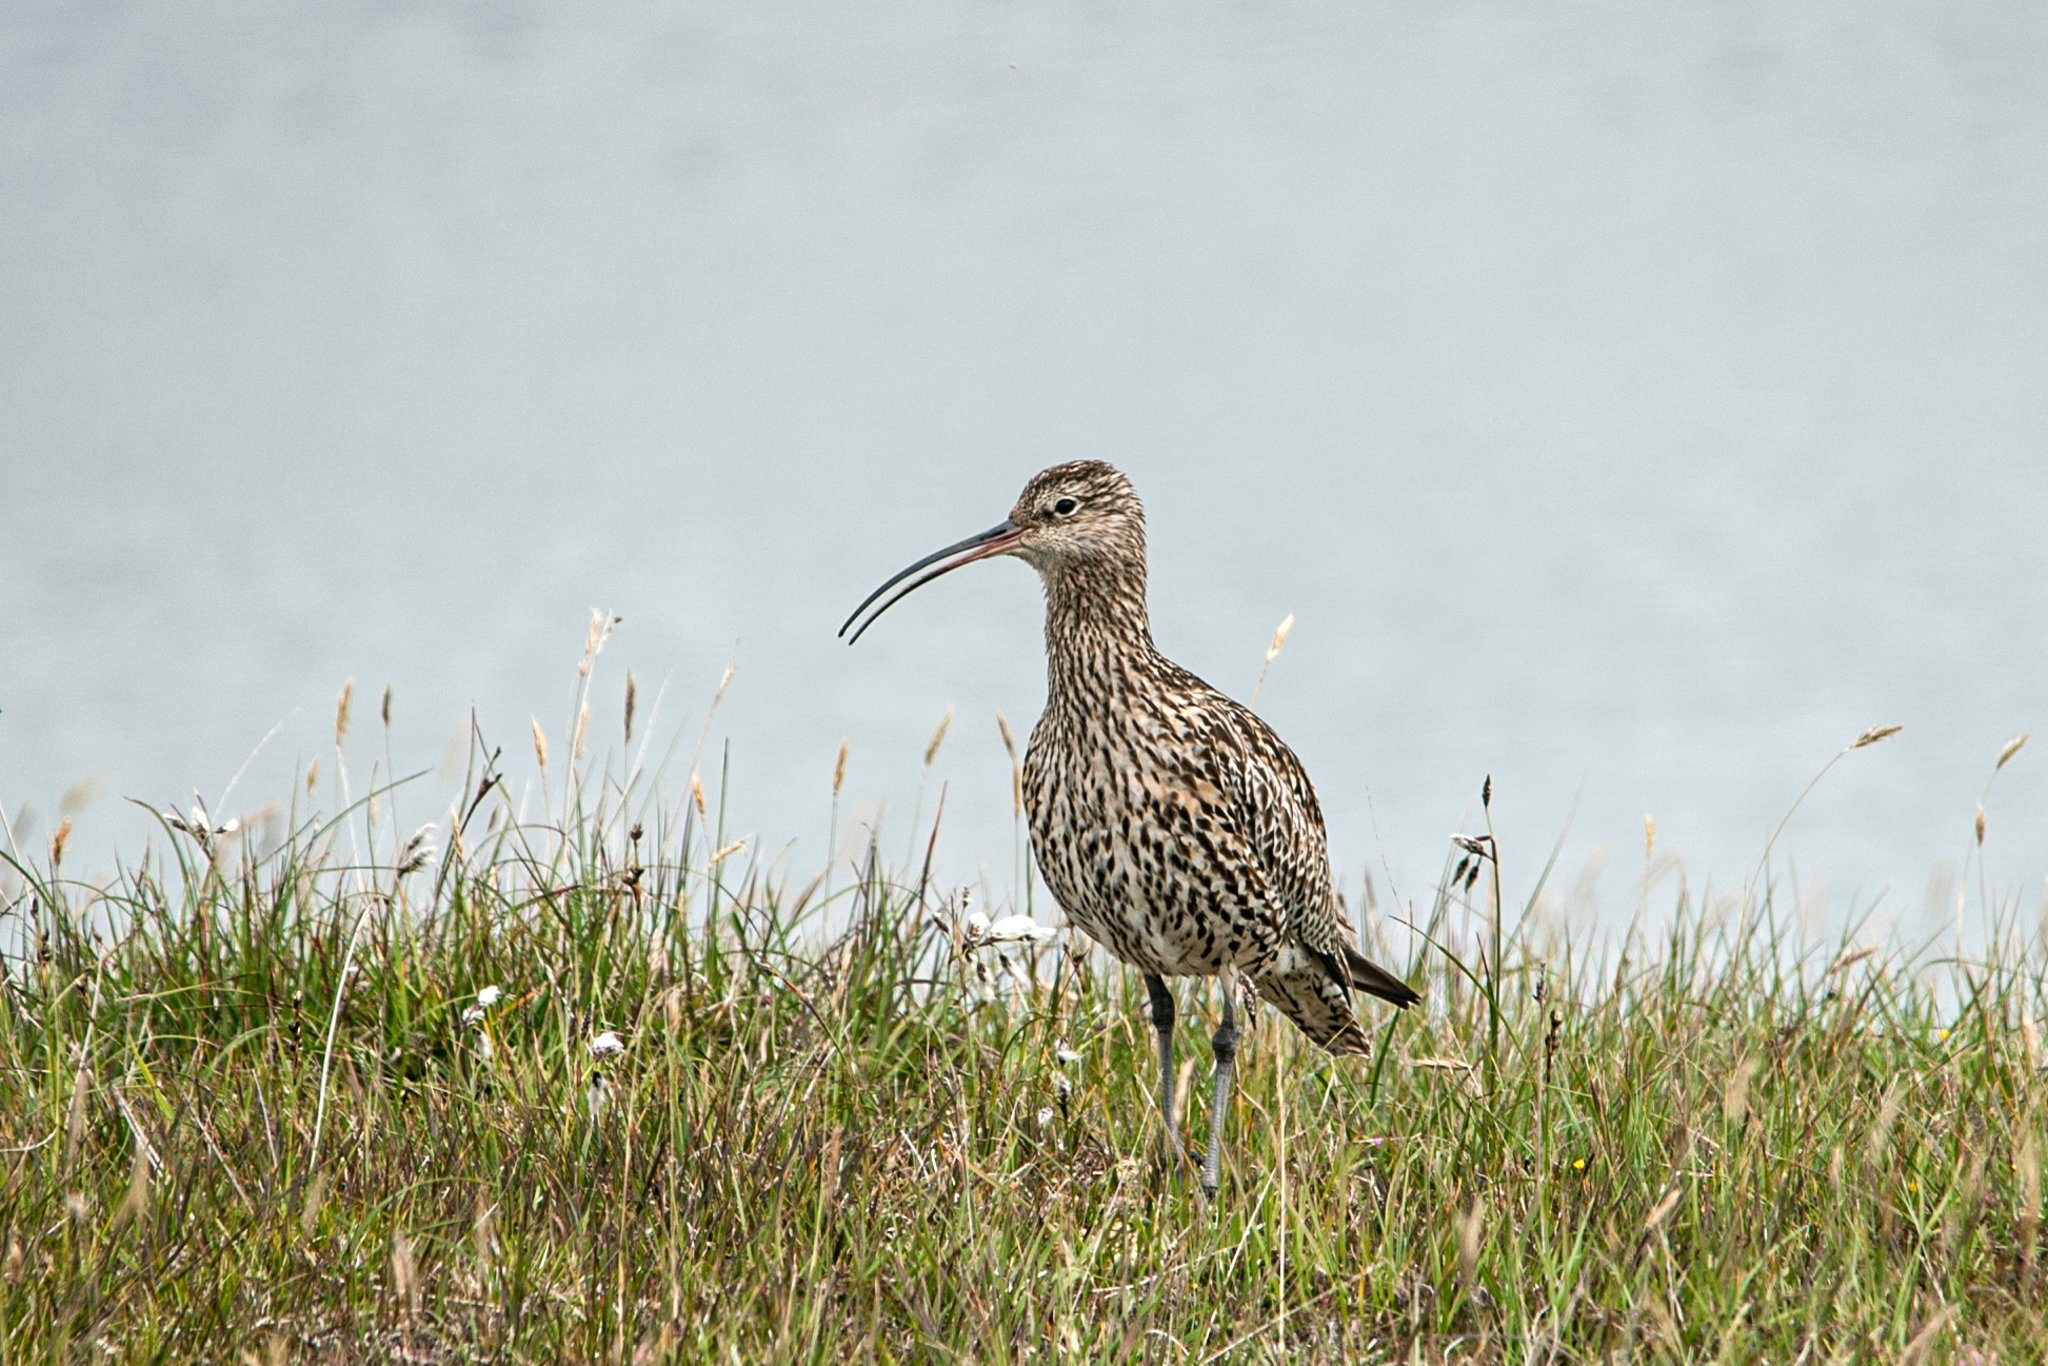 Storspov/Curlew